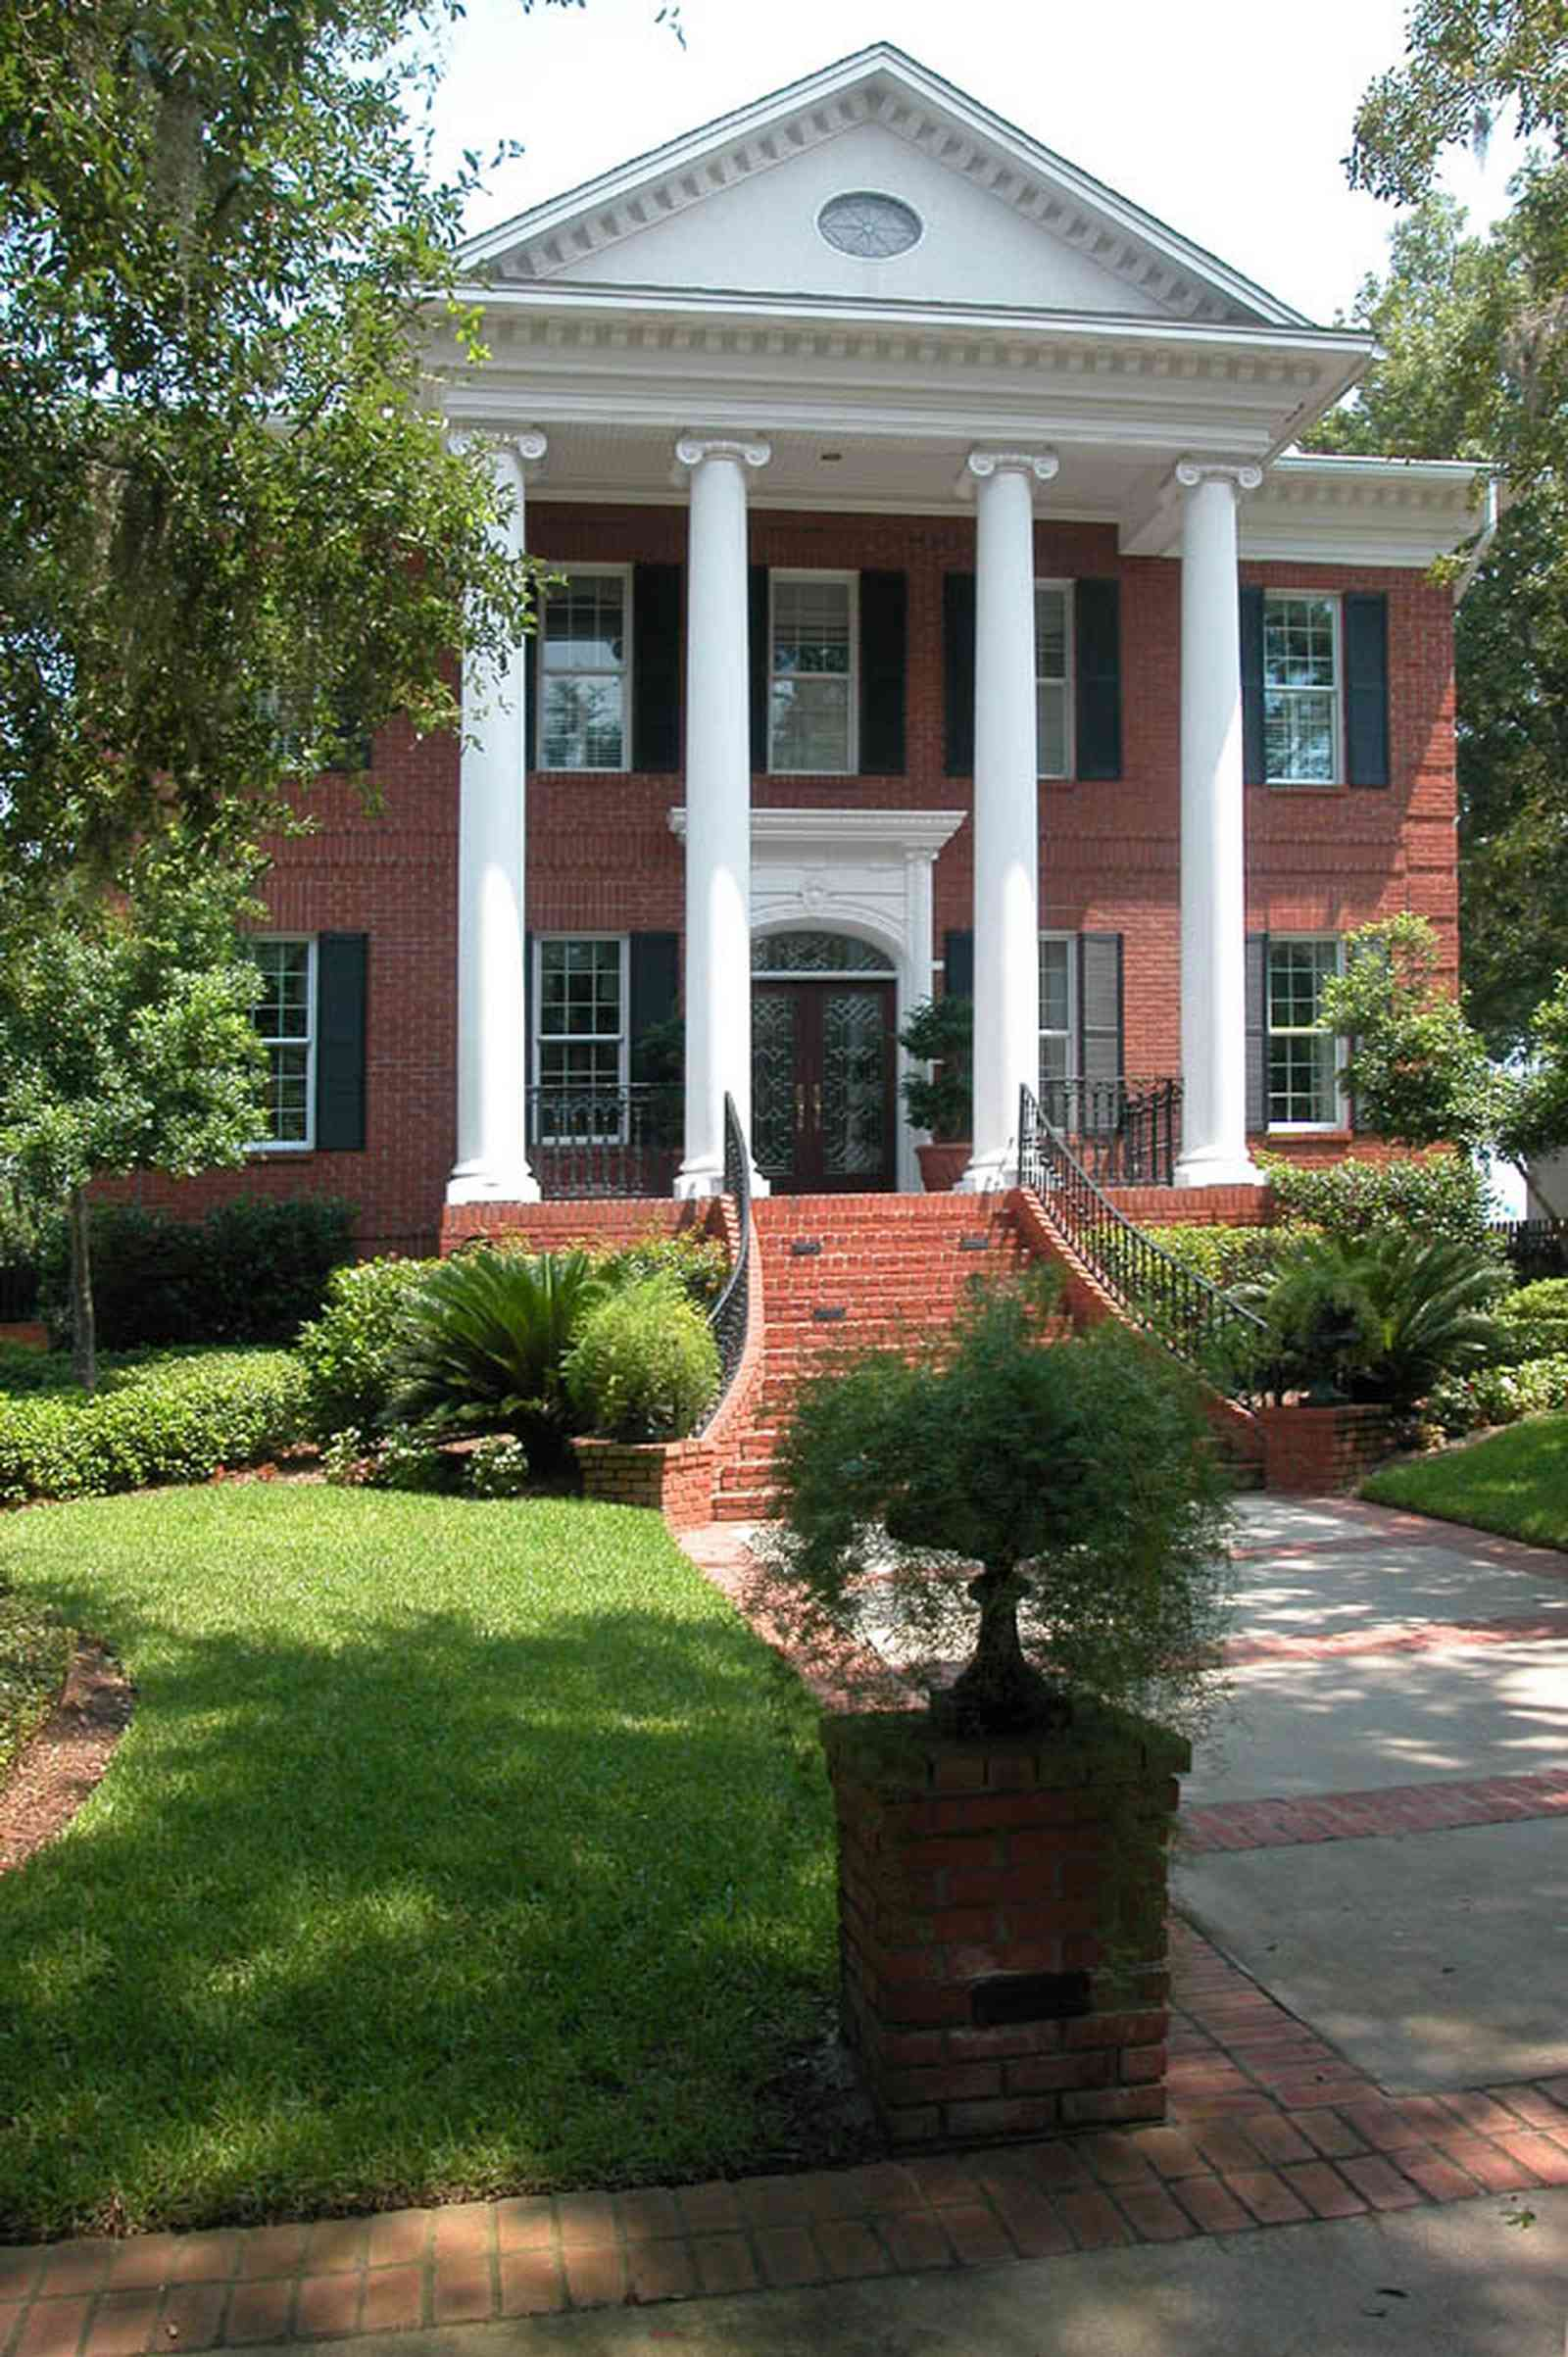 Gulf-Breeze:-506-Kenilworth-Drive_01a-copy.jpg:  red brick mansion, white columns, leaded glass door, mailbox, impatiens, brick wall, spanish moss, oak trees, fern, sidewalk, wrought-iron, doric columns, shutters, porch